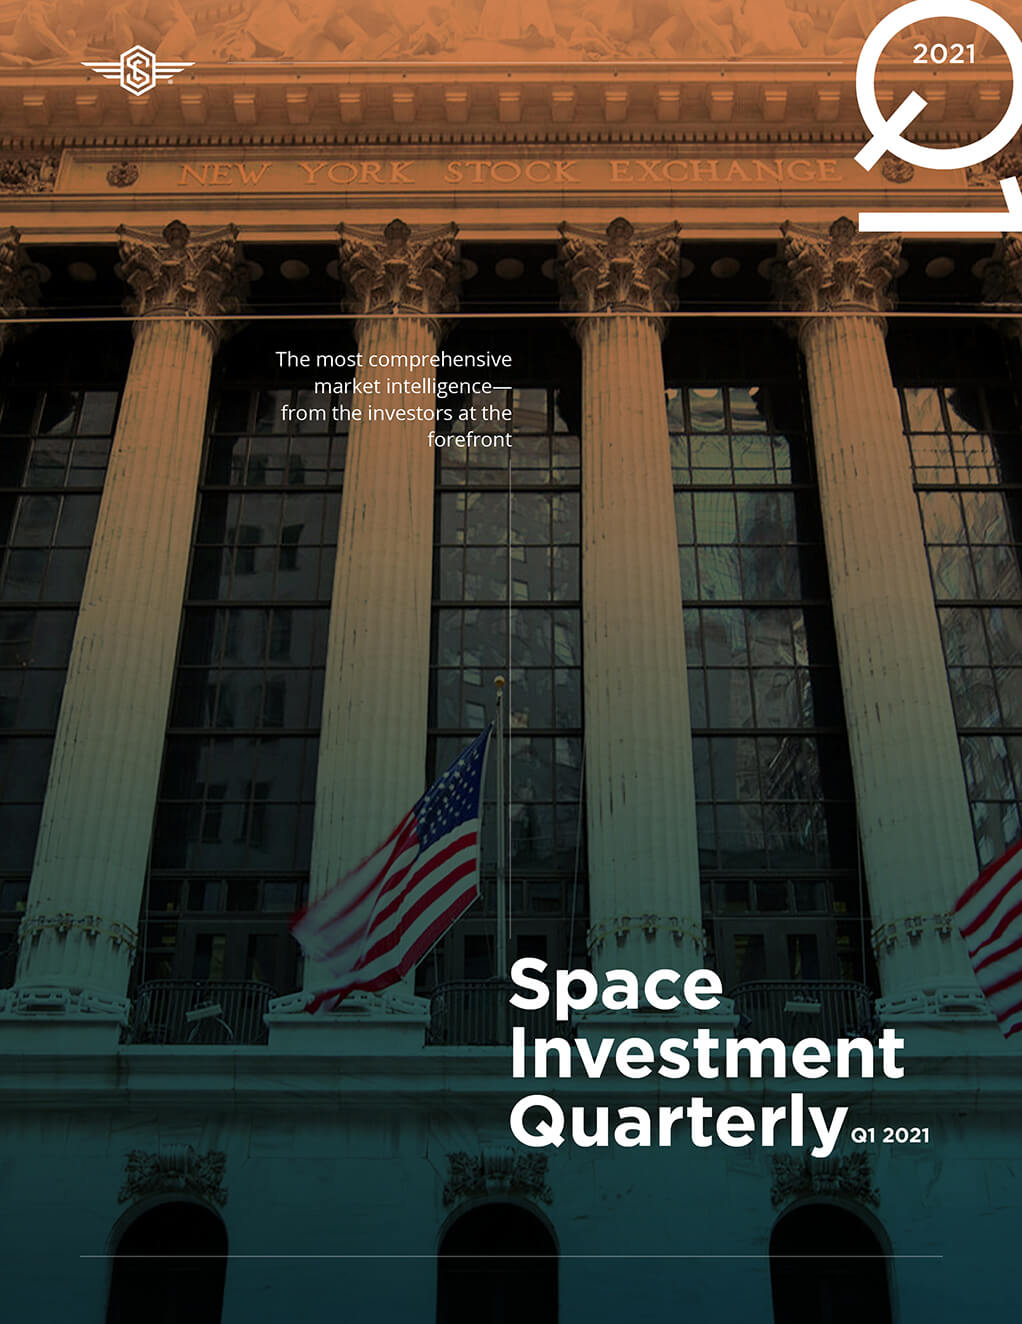 Space Investment Quarterly